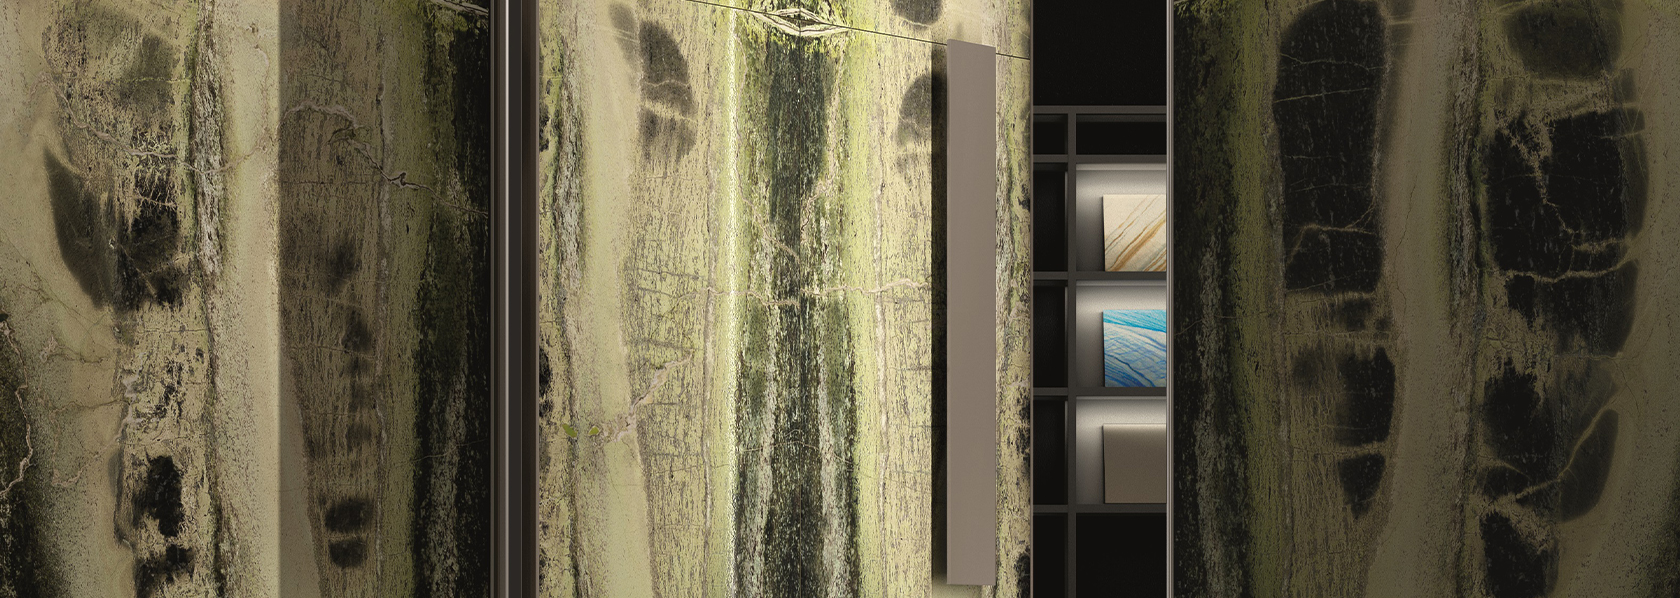 Antolini covered Oikos entrance architectural solutions at Cersaie 2019 - Oikos